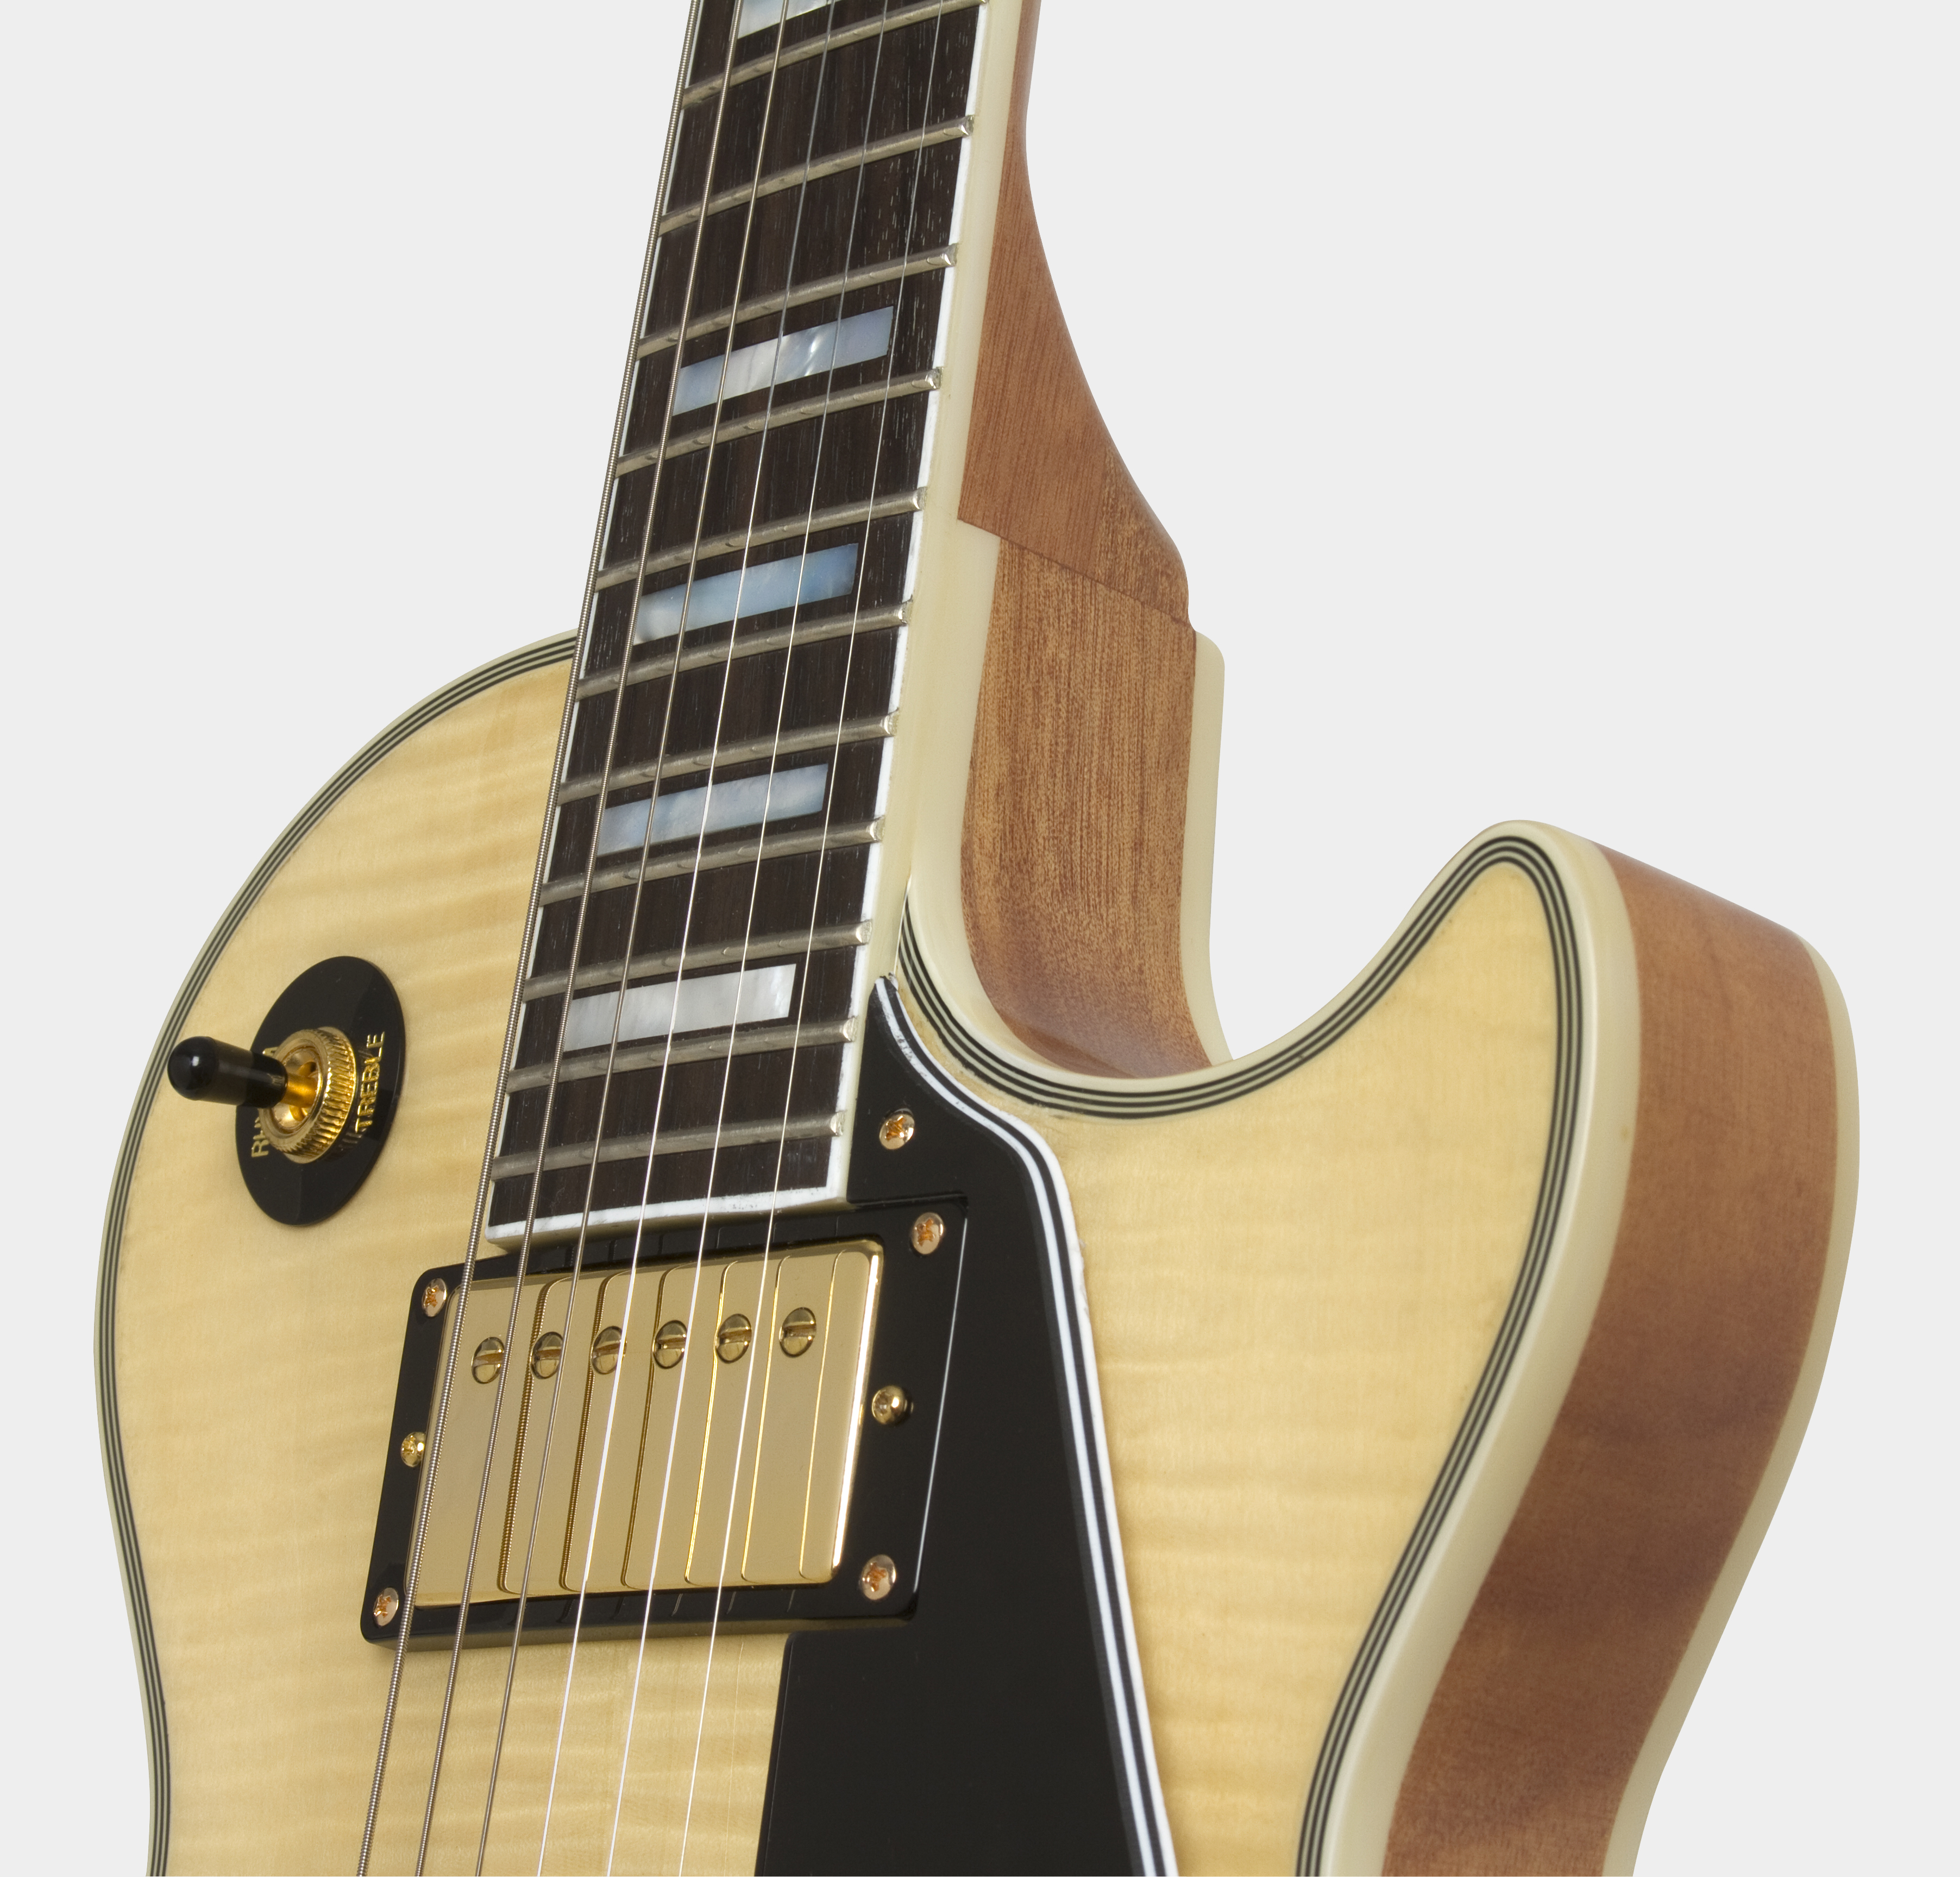 EPIPHONE Ltd Ed Les Paul Custom 100th Anniversary Natural Body Detail